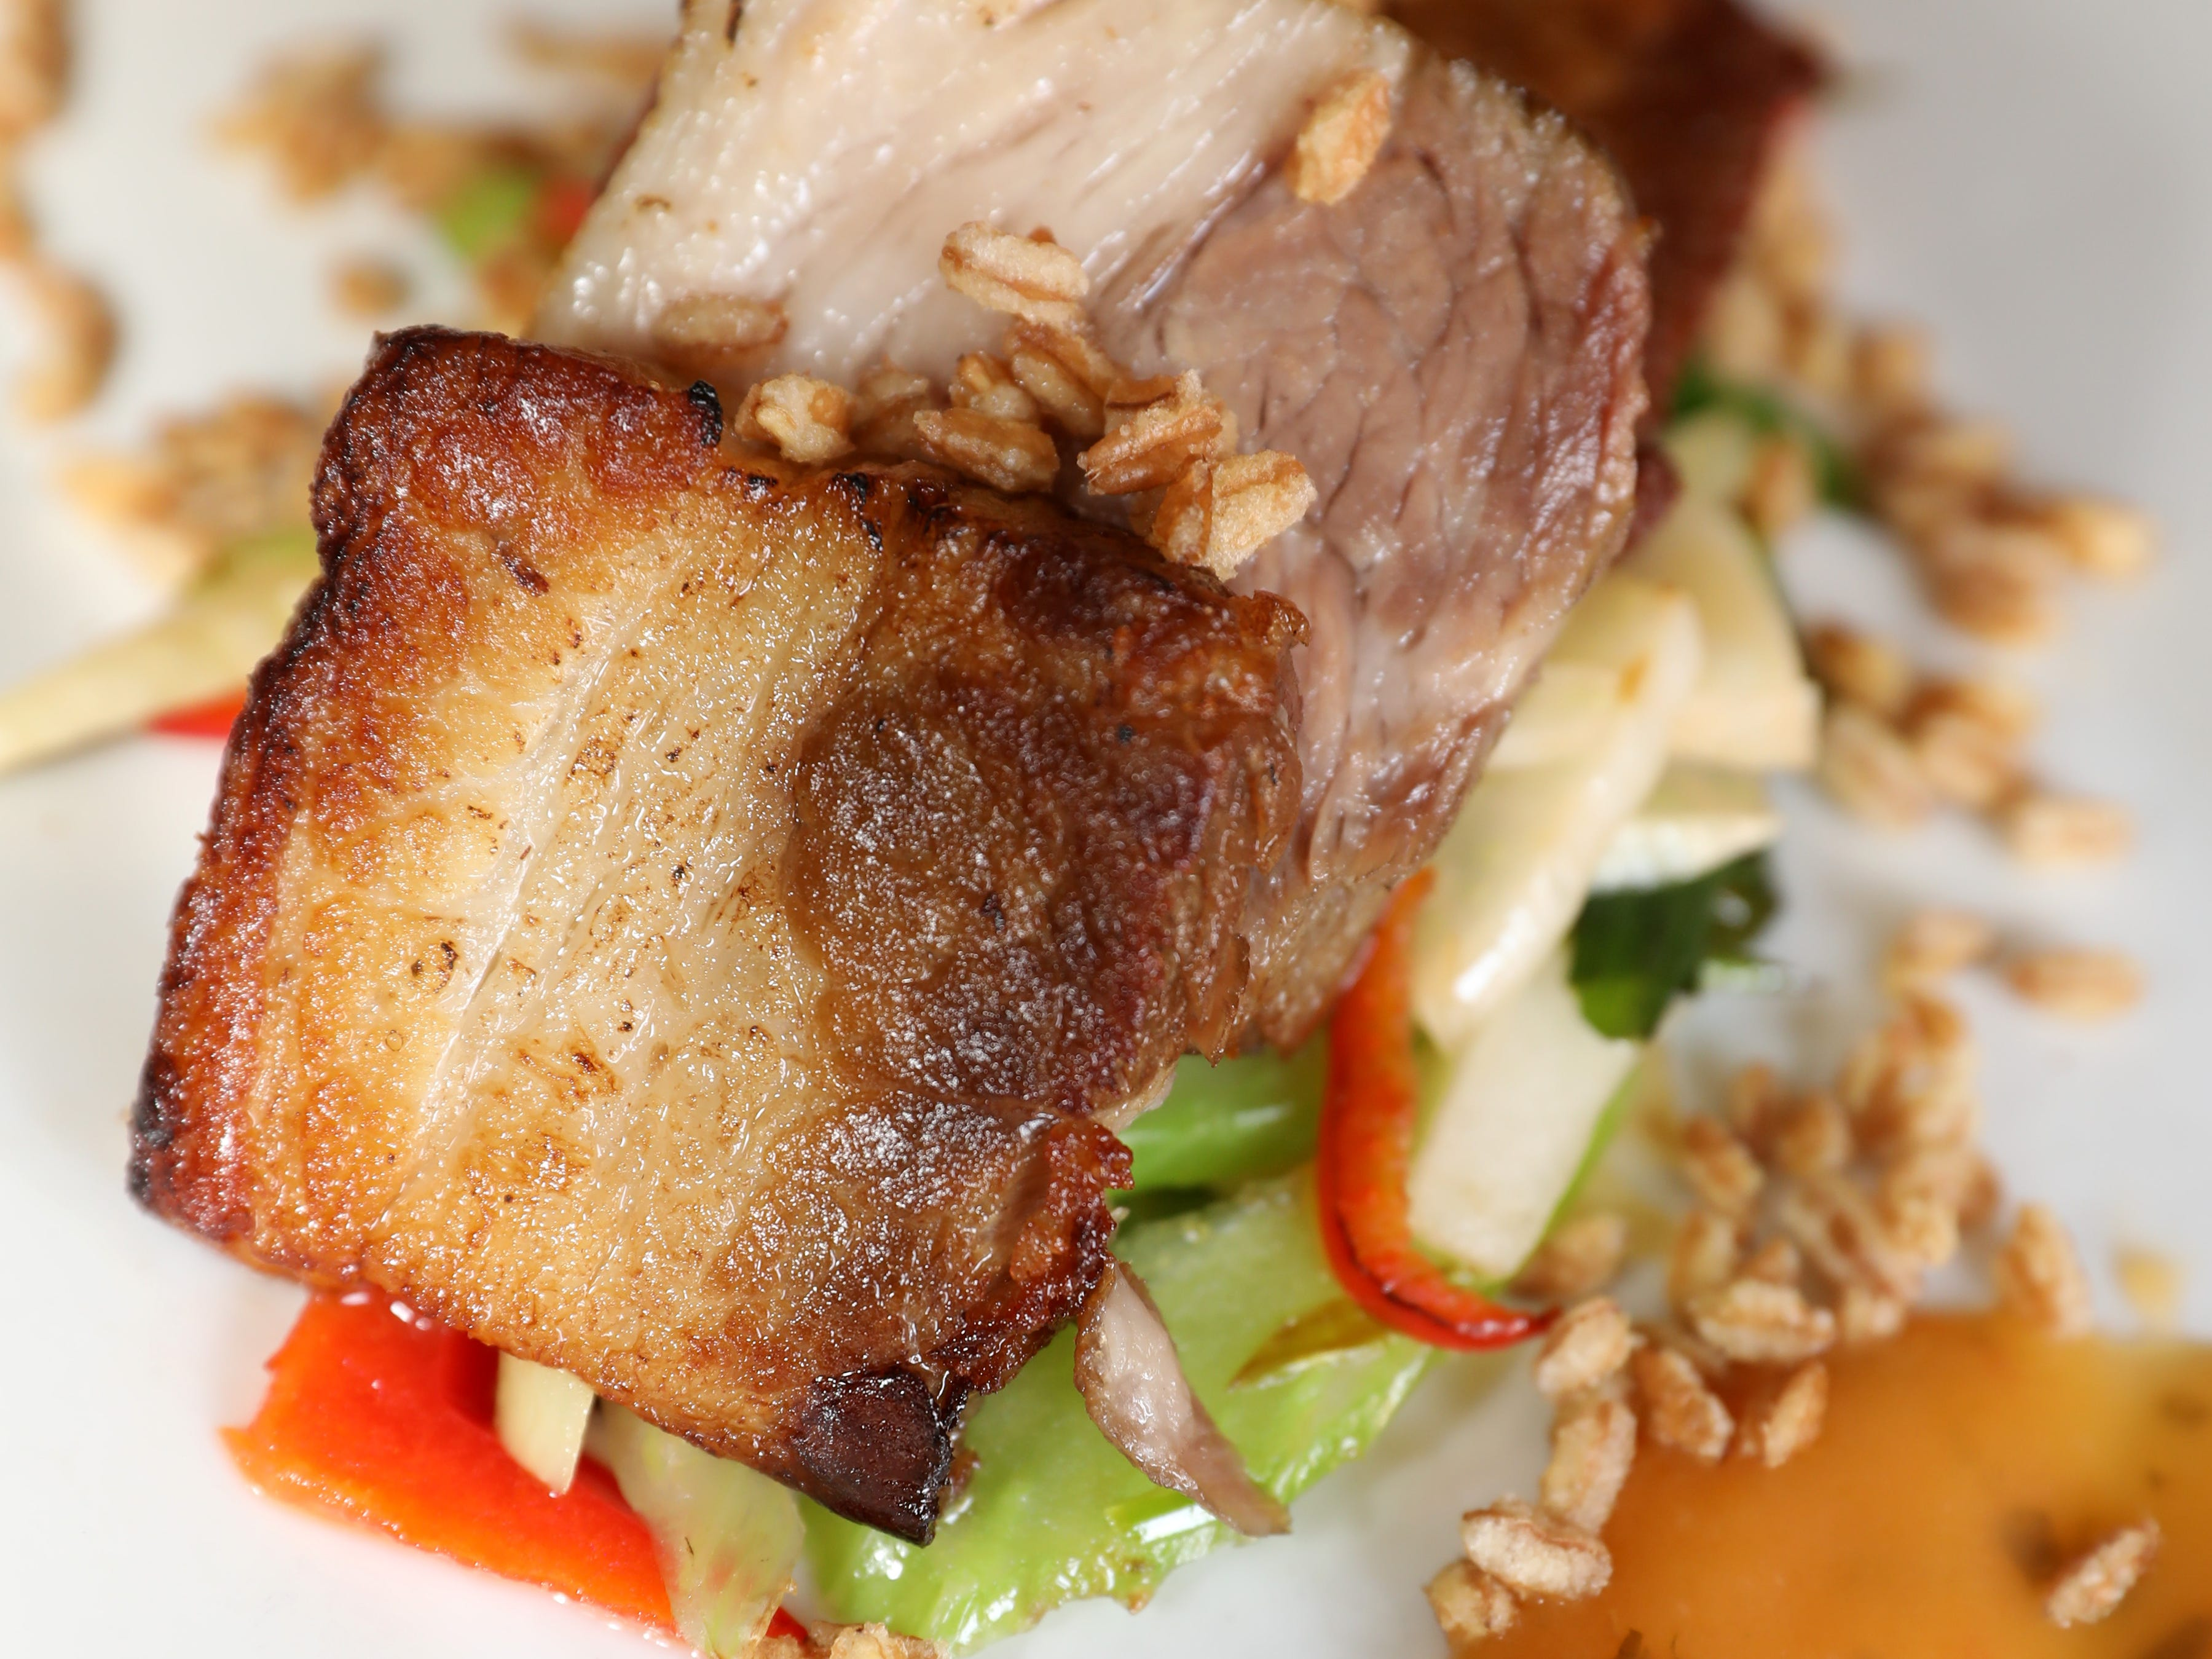 Pork belly with Thai garlic sauce at Velo Bistro Wine Bar in Nyack March 14, 2019.